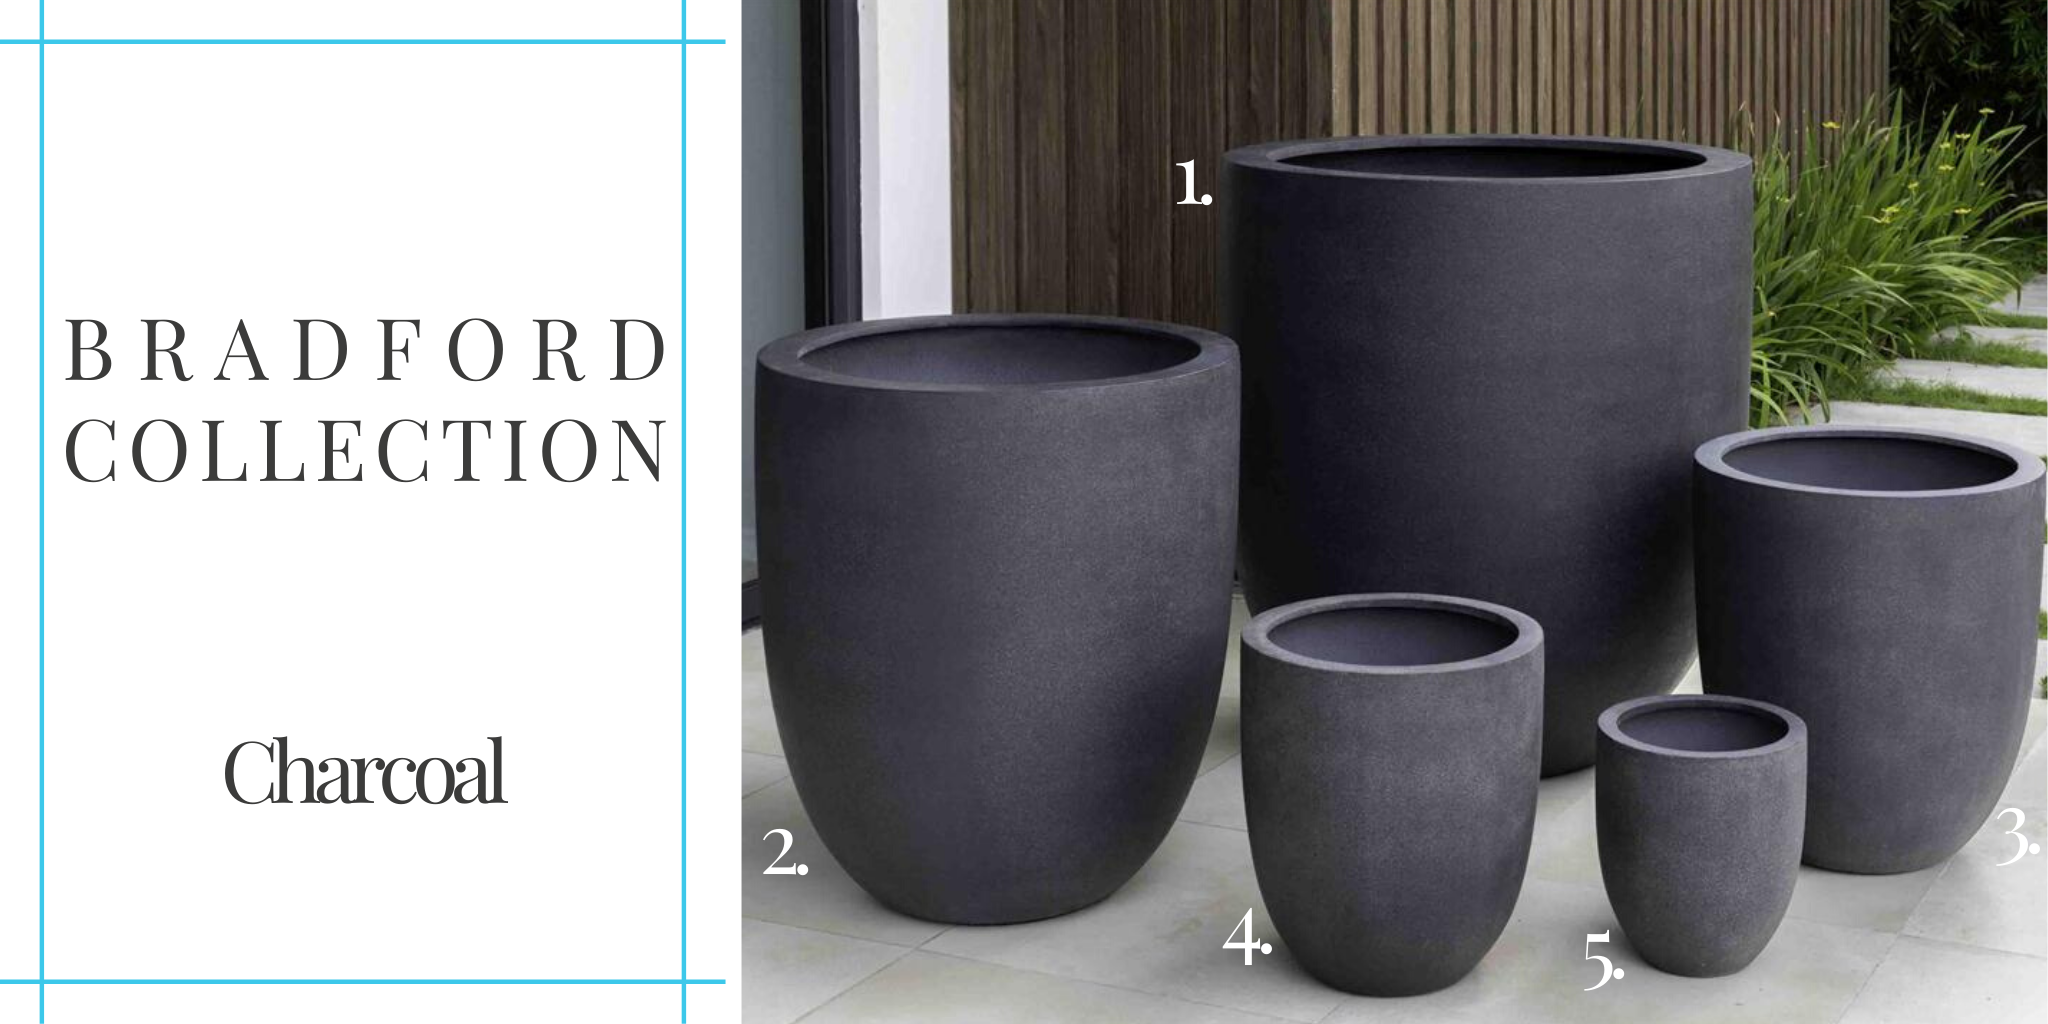 bradford-collection-charcoal planters